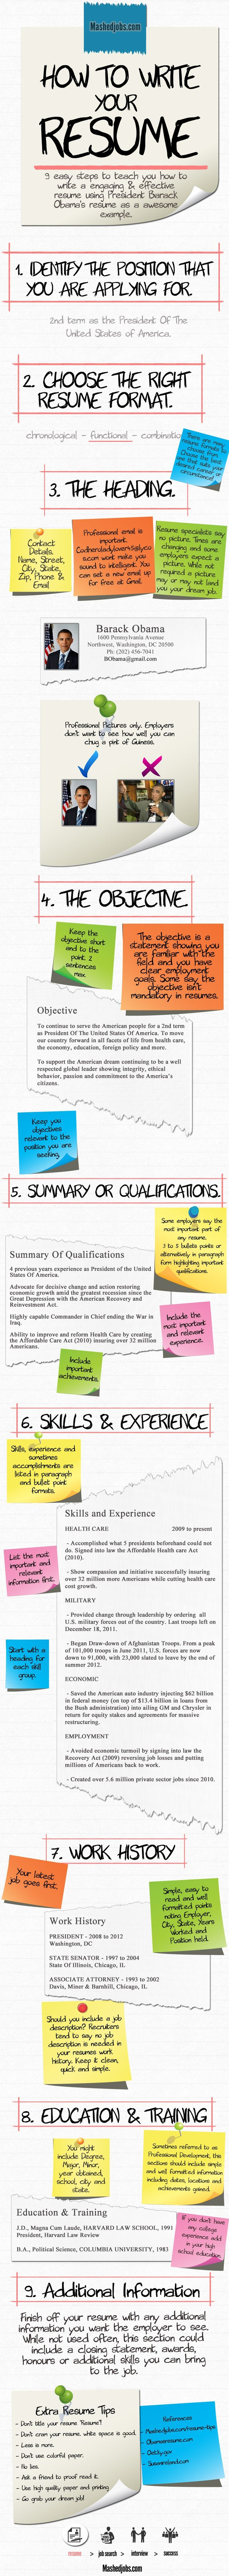 How To Write Your Resume Infographic Prepare For Your Job New